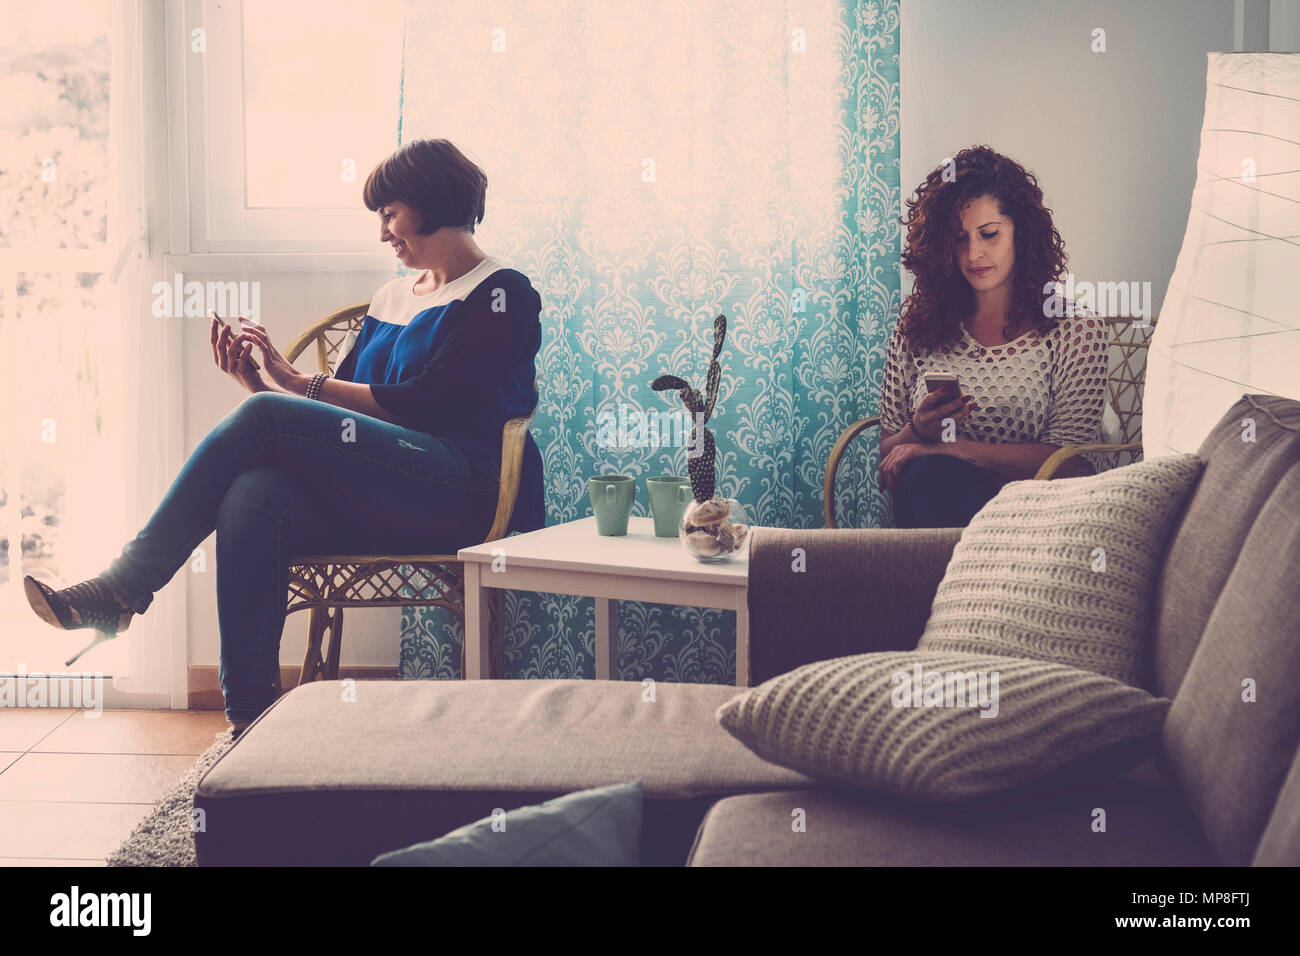 two women friends at home everyone with a mobile phone chat and look or check email. don't speak each other in a modern day. technology destroy friend - Stock Image